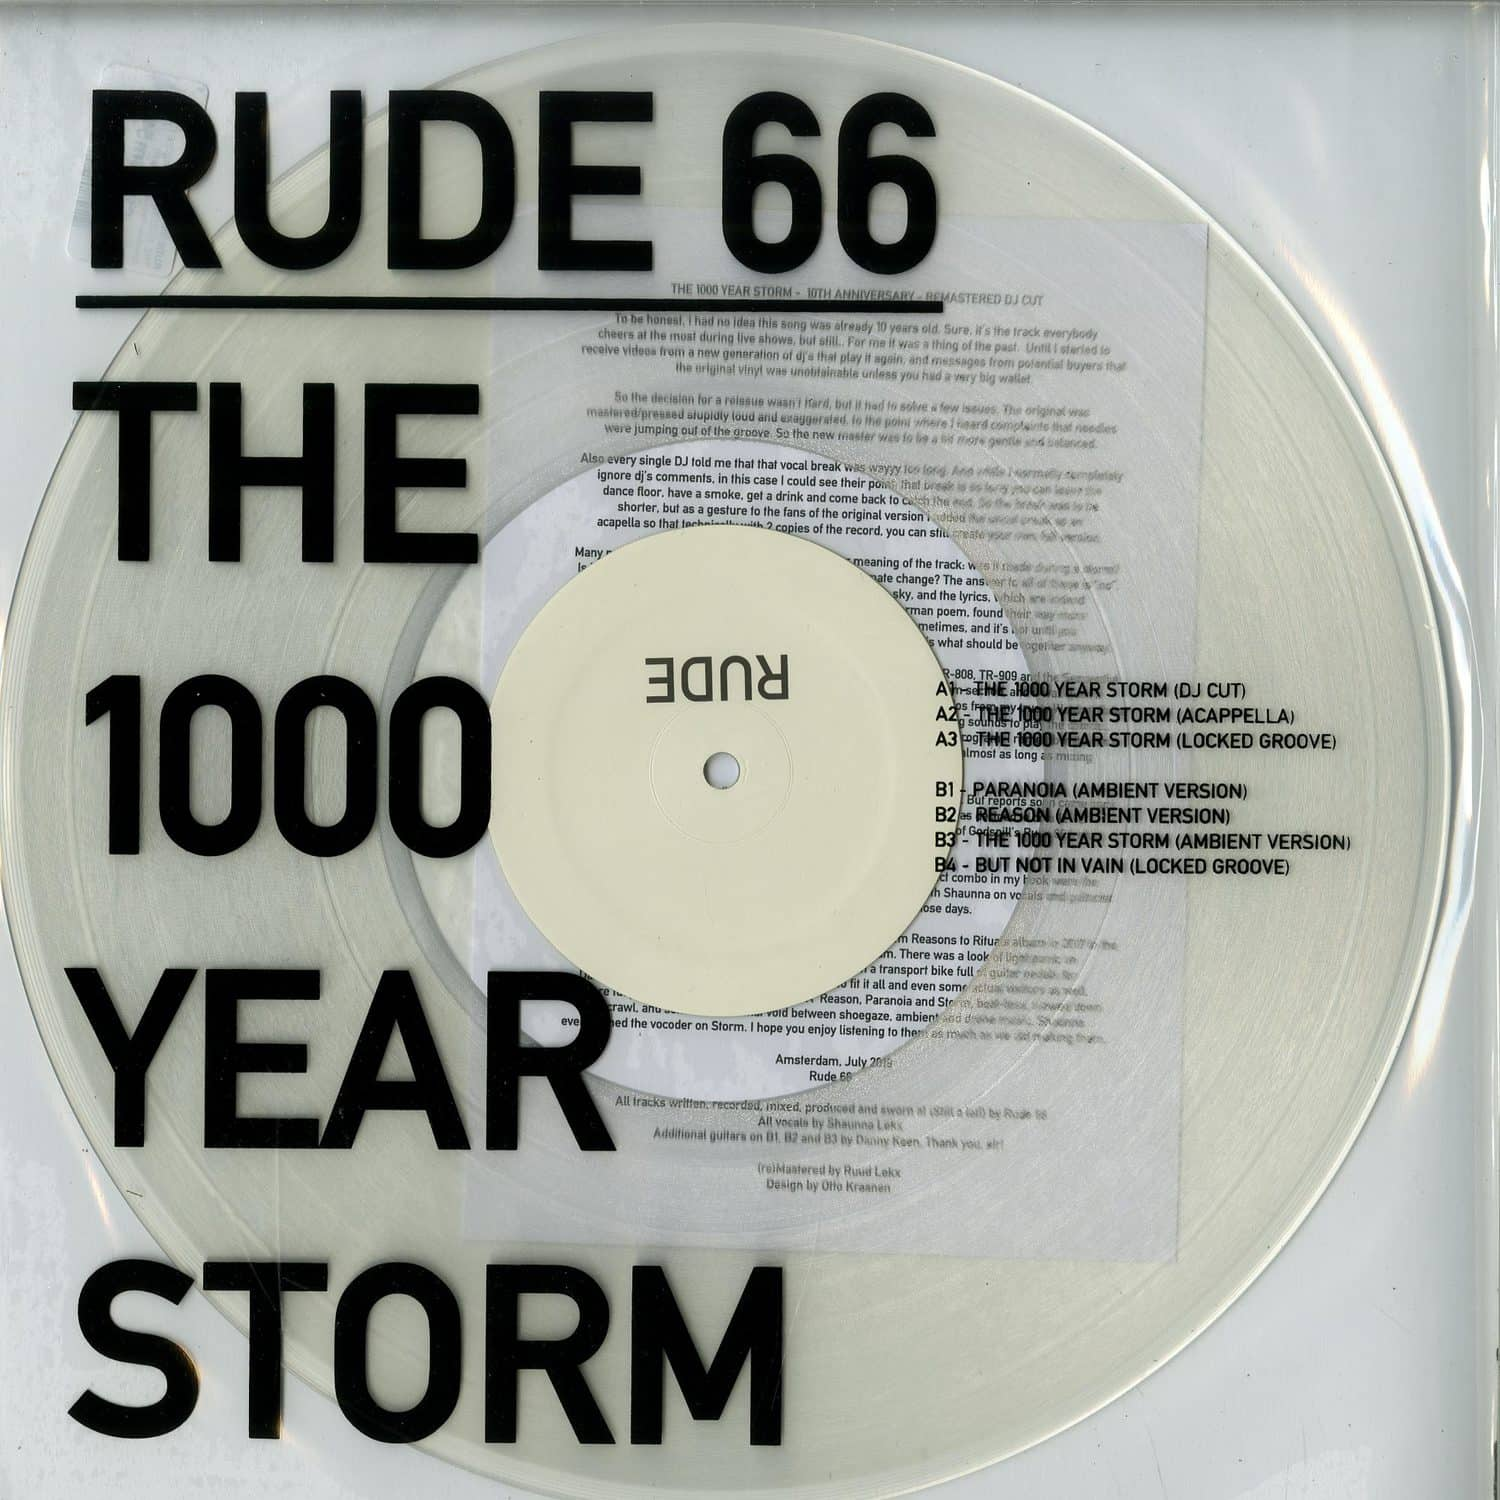 Rude 66 - THE 1000 YEAR STORM EP